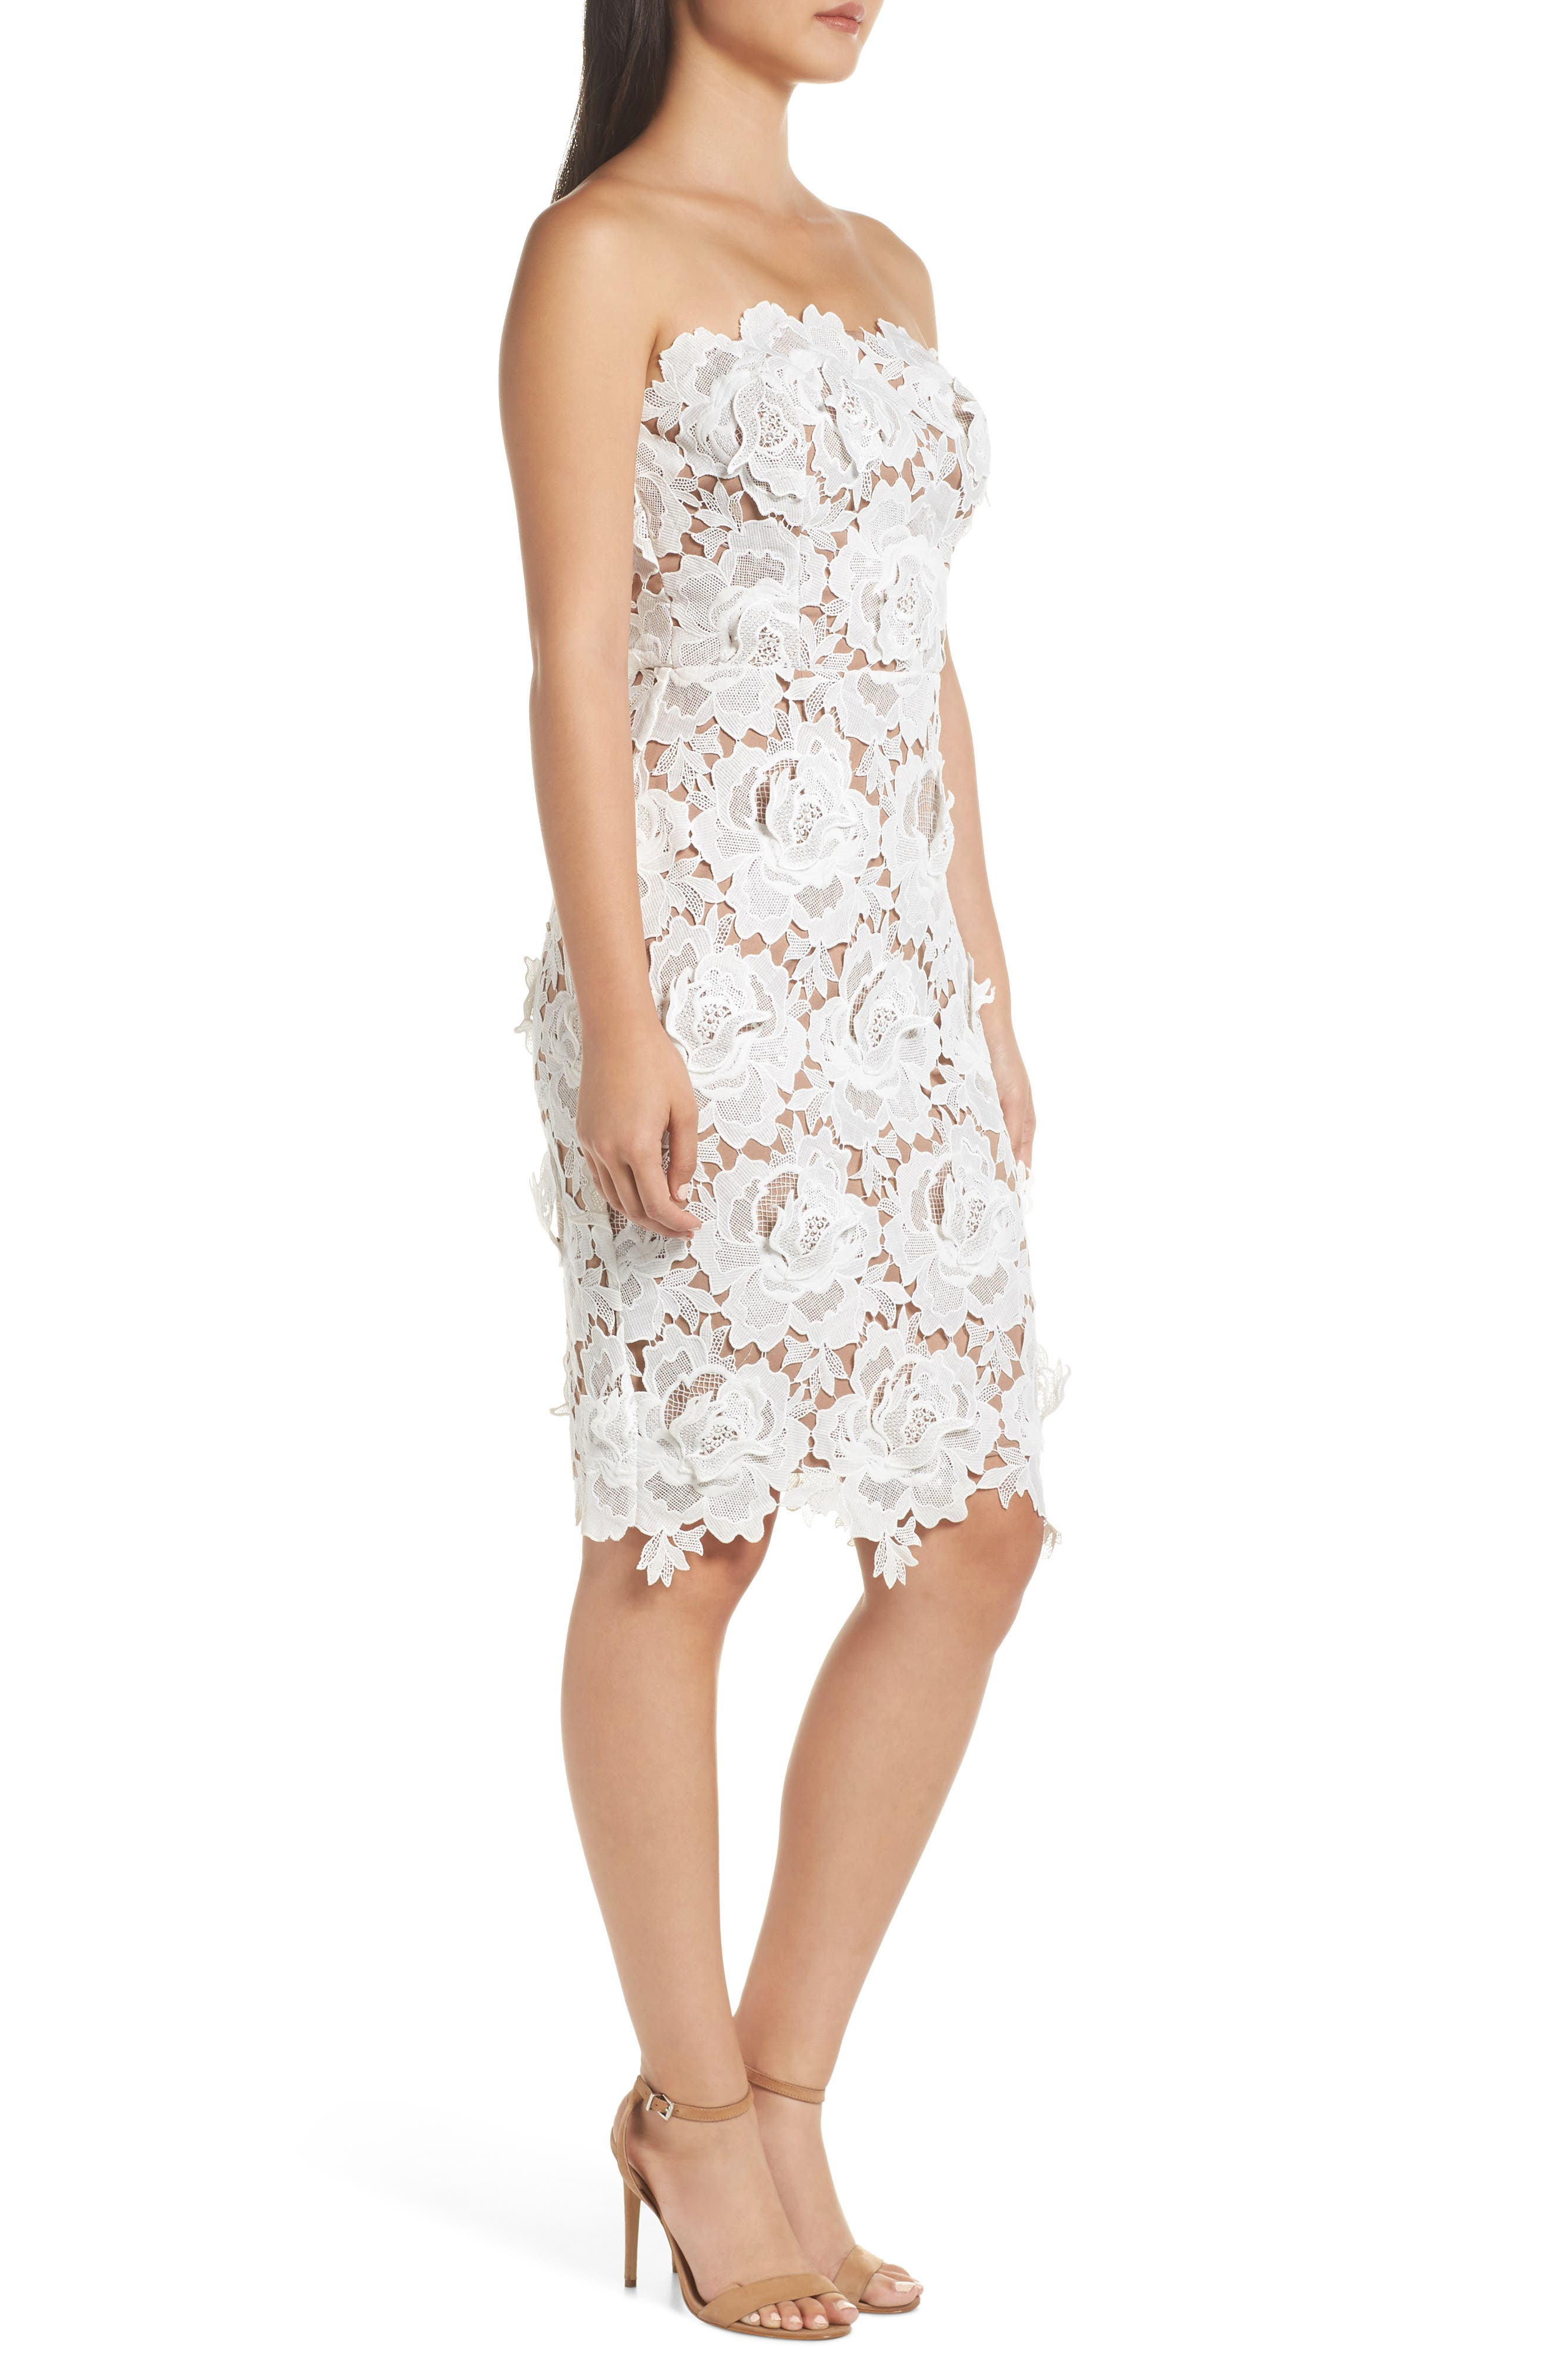 Jade Strapless Lace Dress,                             Alternate thumbnail 3, color,                             WHITE-NUDE